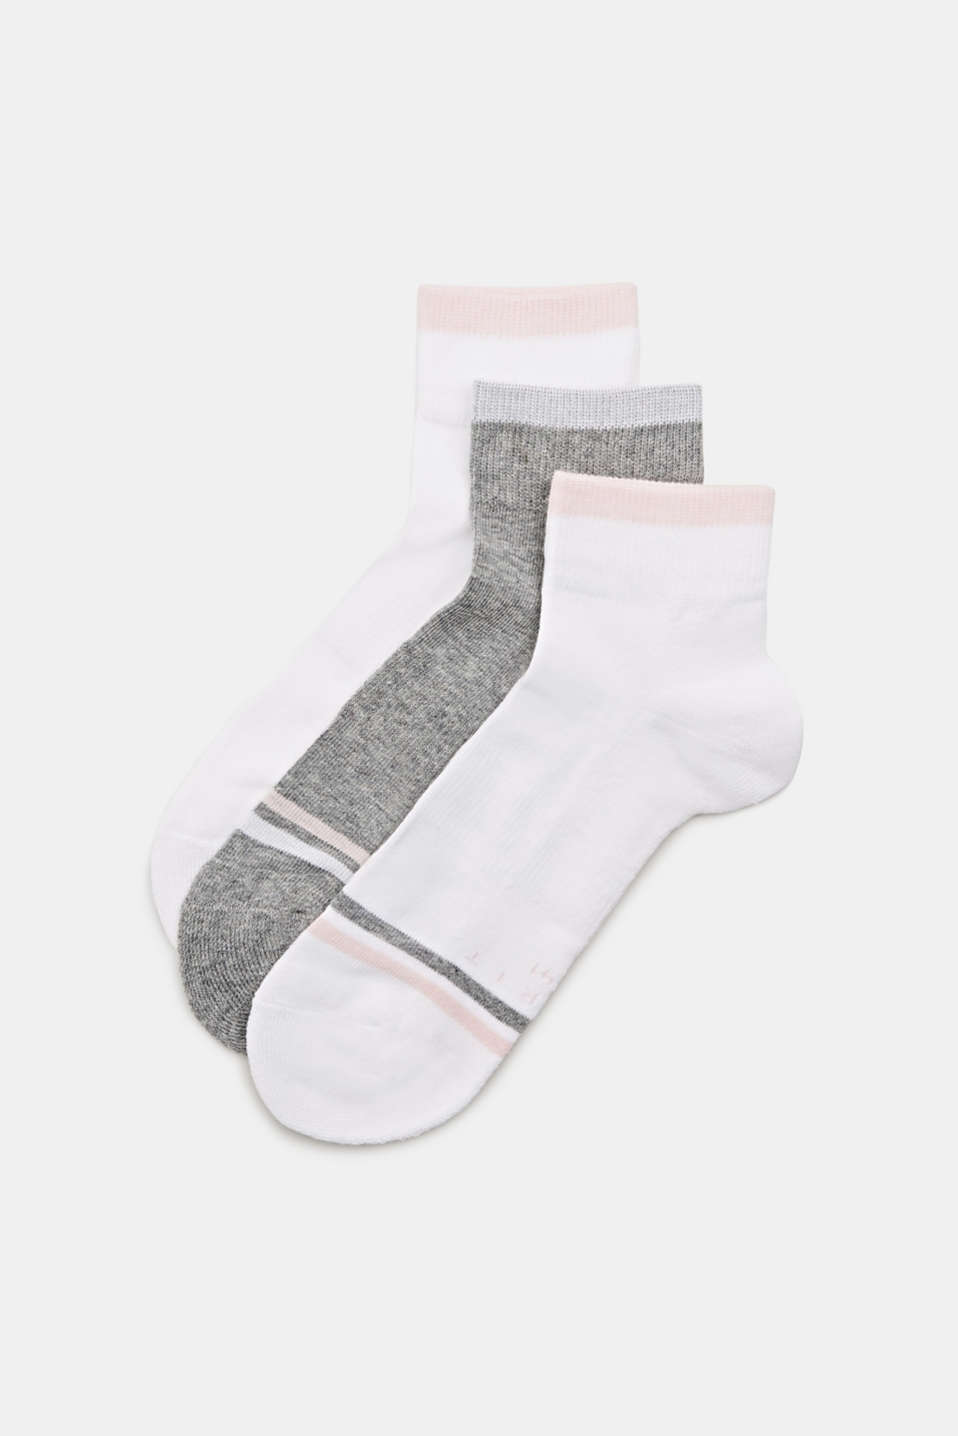 3-pair pack of blended cotton socks, LCSORTIMENT, detail image number 0